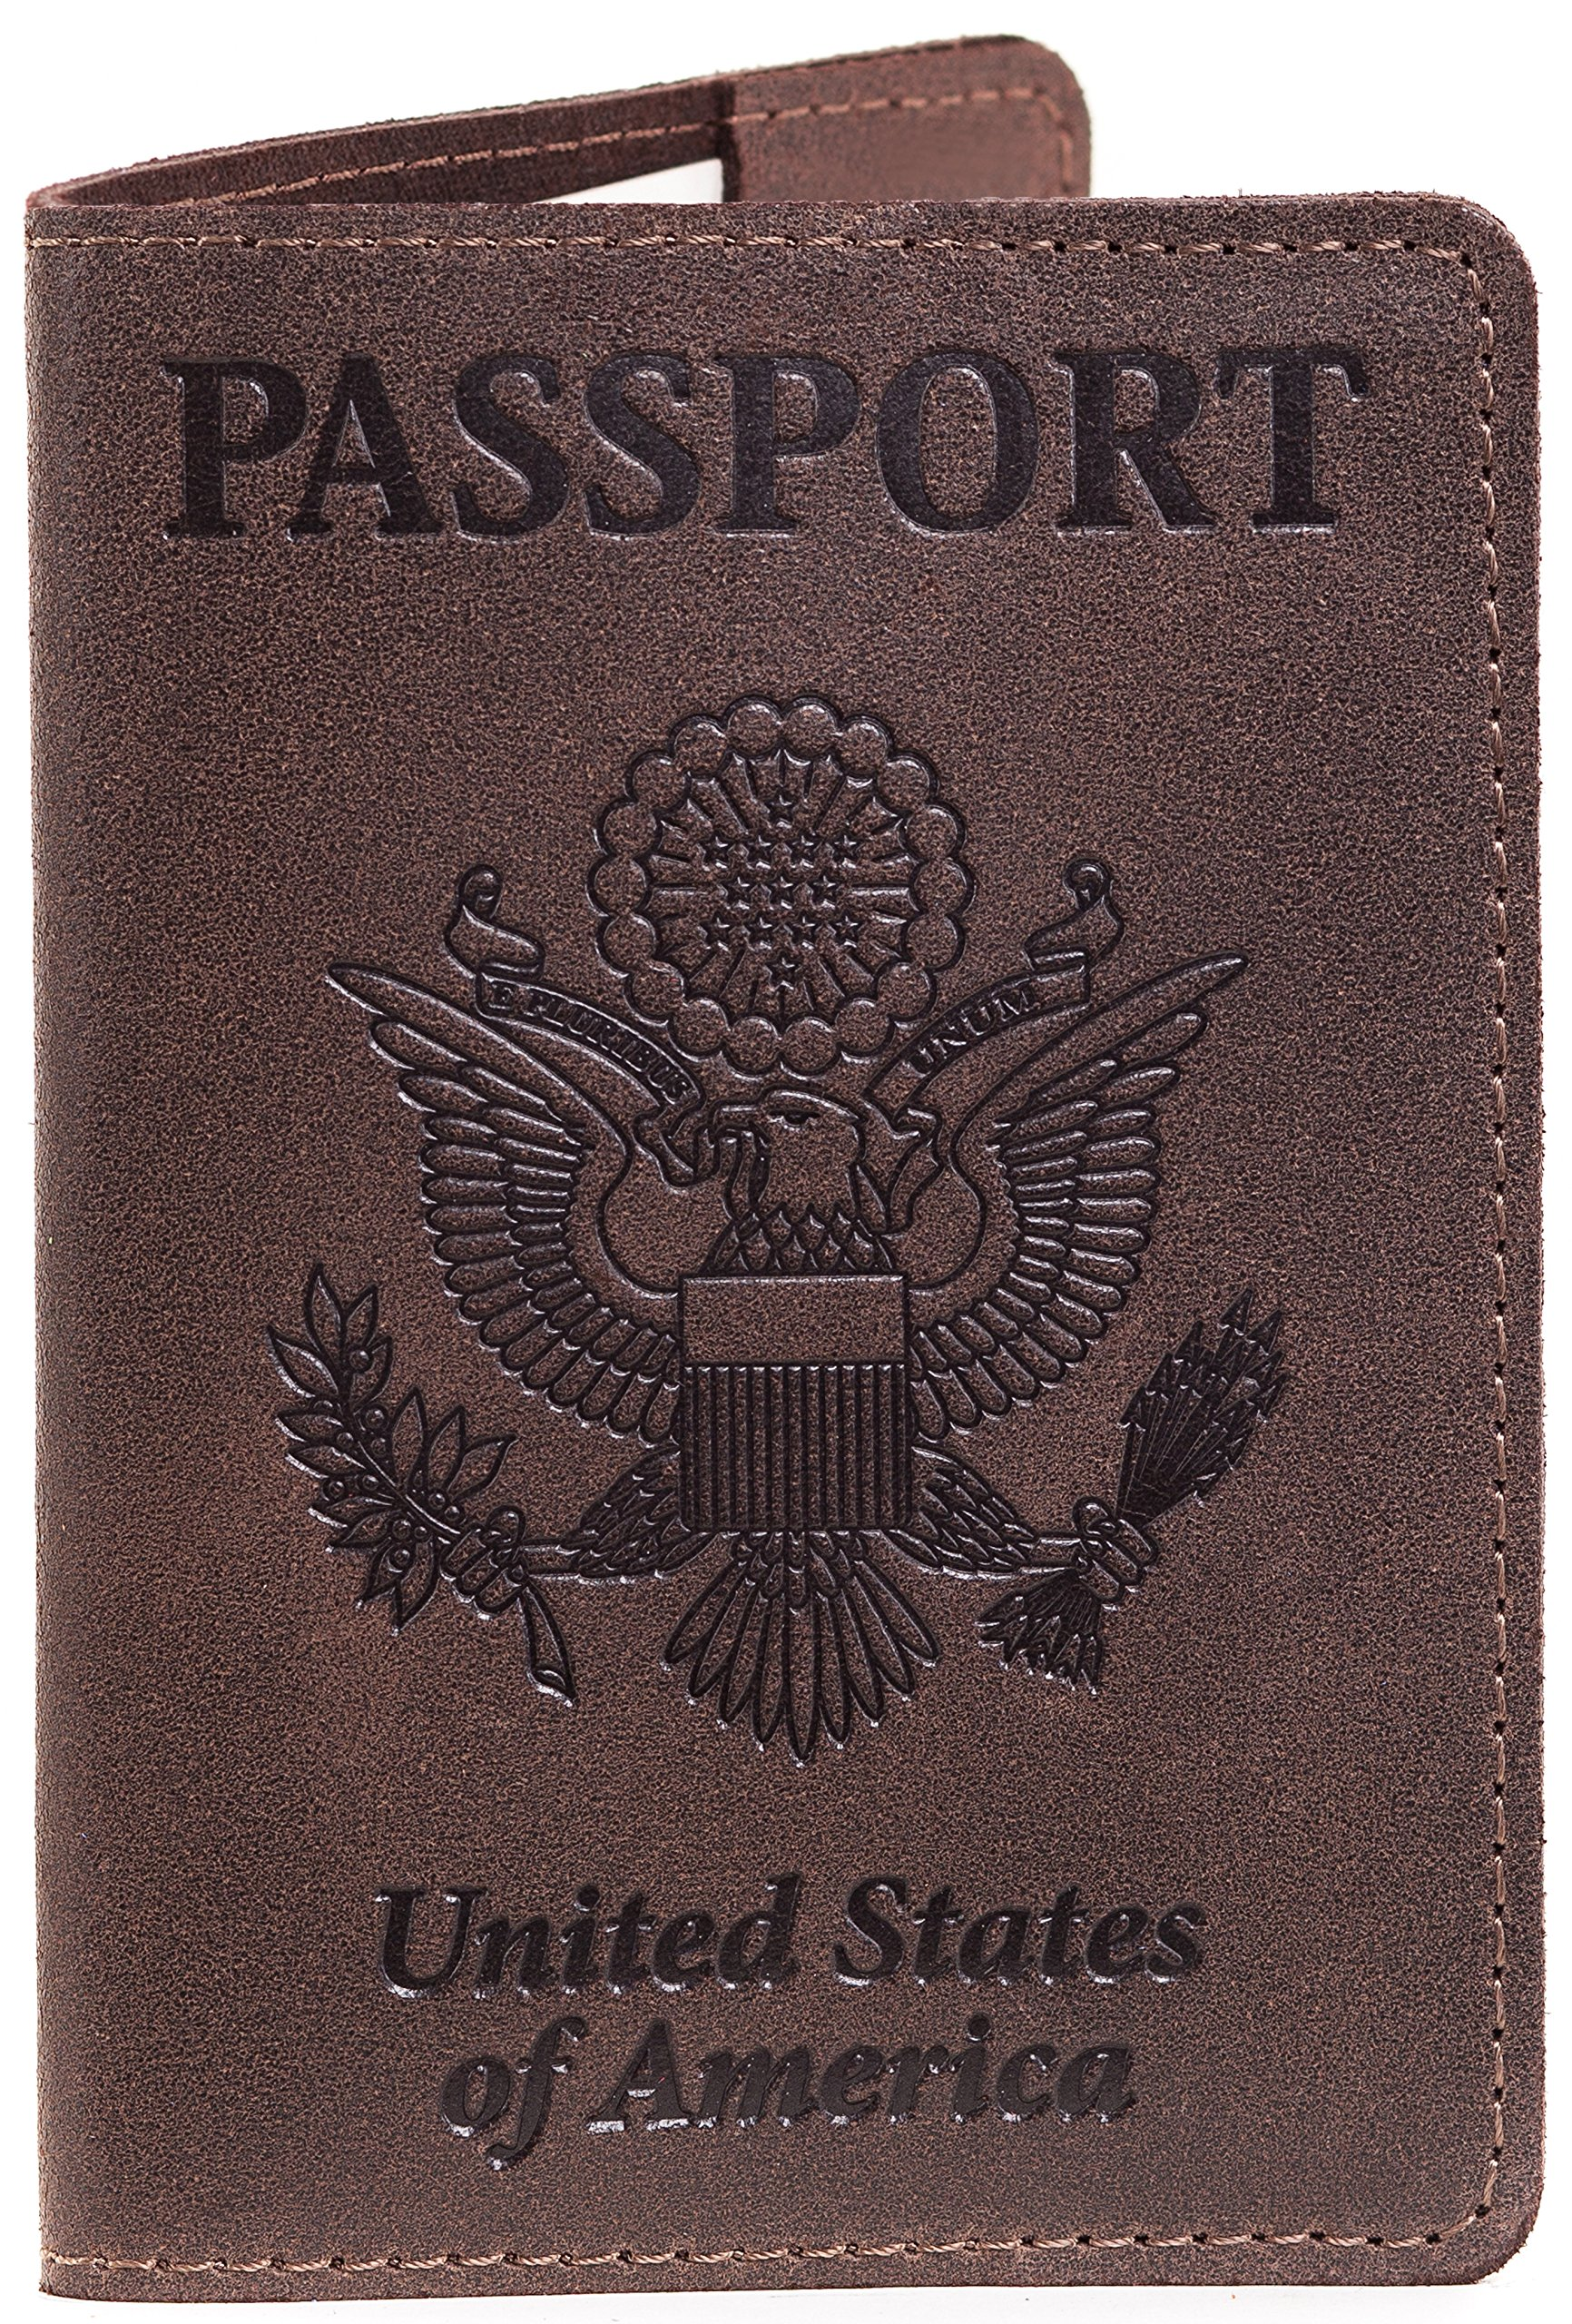 Leather Passport Cover - Passport Holder (Brown chocolate) by Gmakin